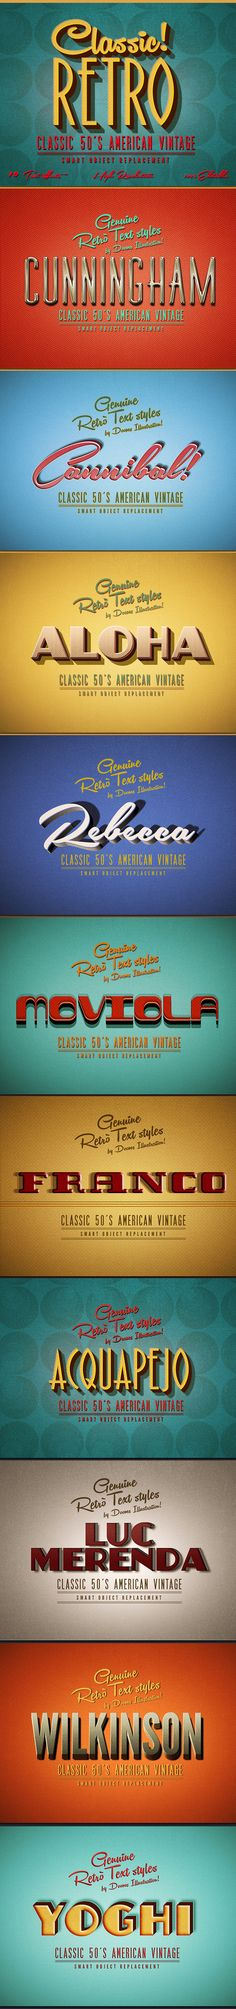 Classic American Vintage Retro Text Effects for Photoshop. Download here: http://graphicriver.net/item/retro-text-effects-classic-american-vintage-/8893761?ref=ksioks